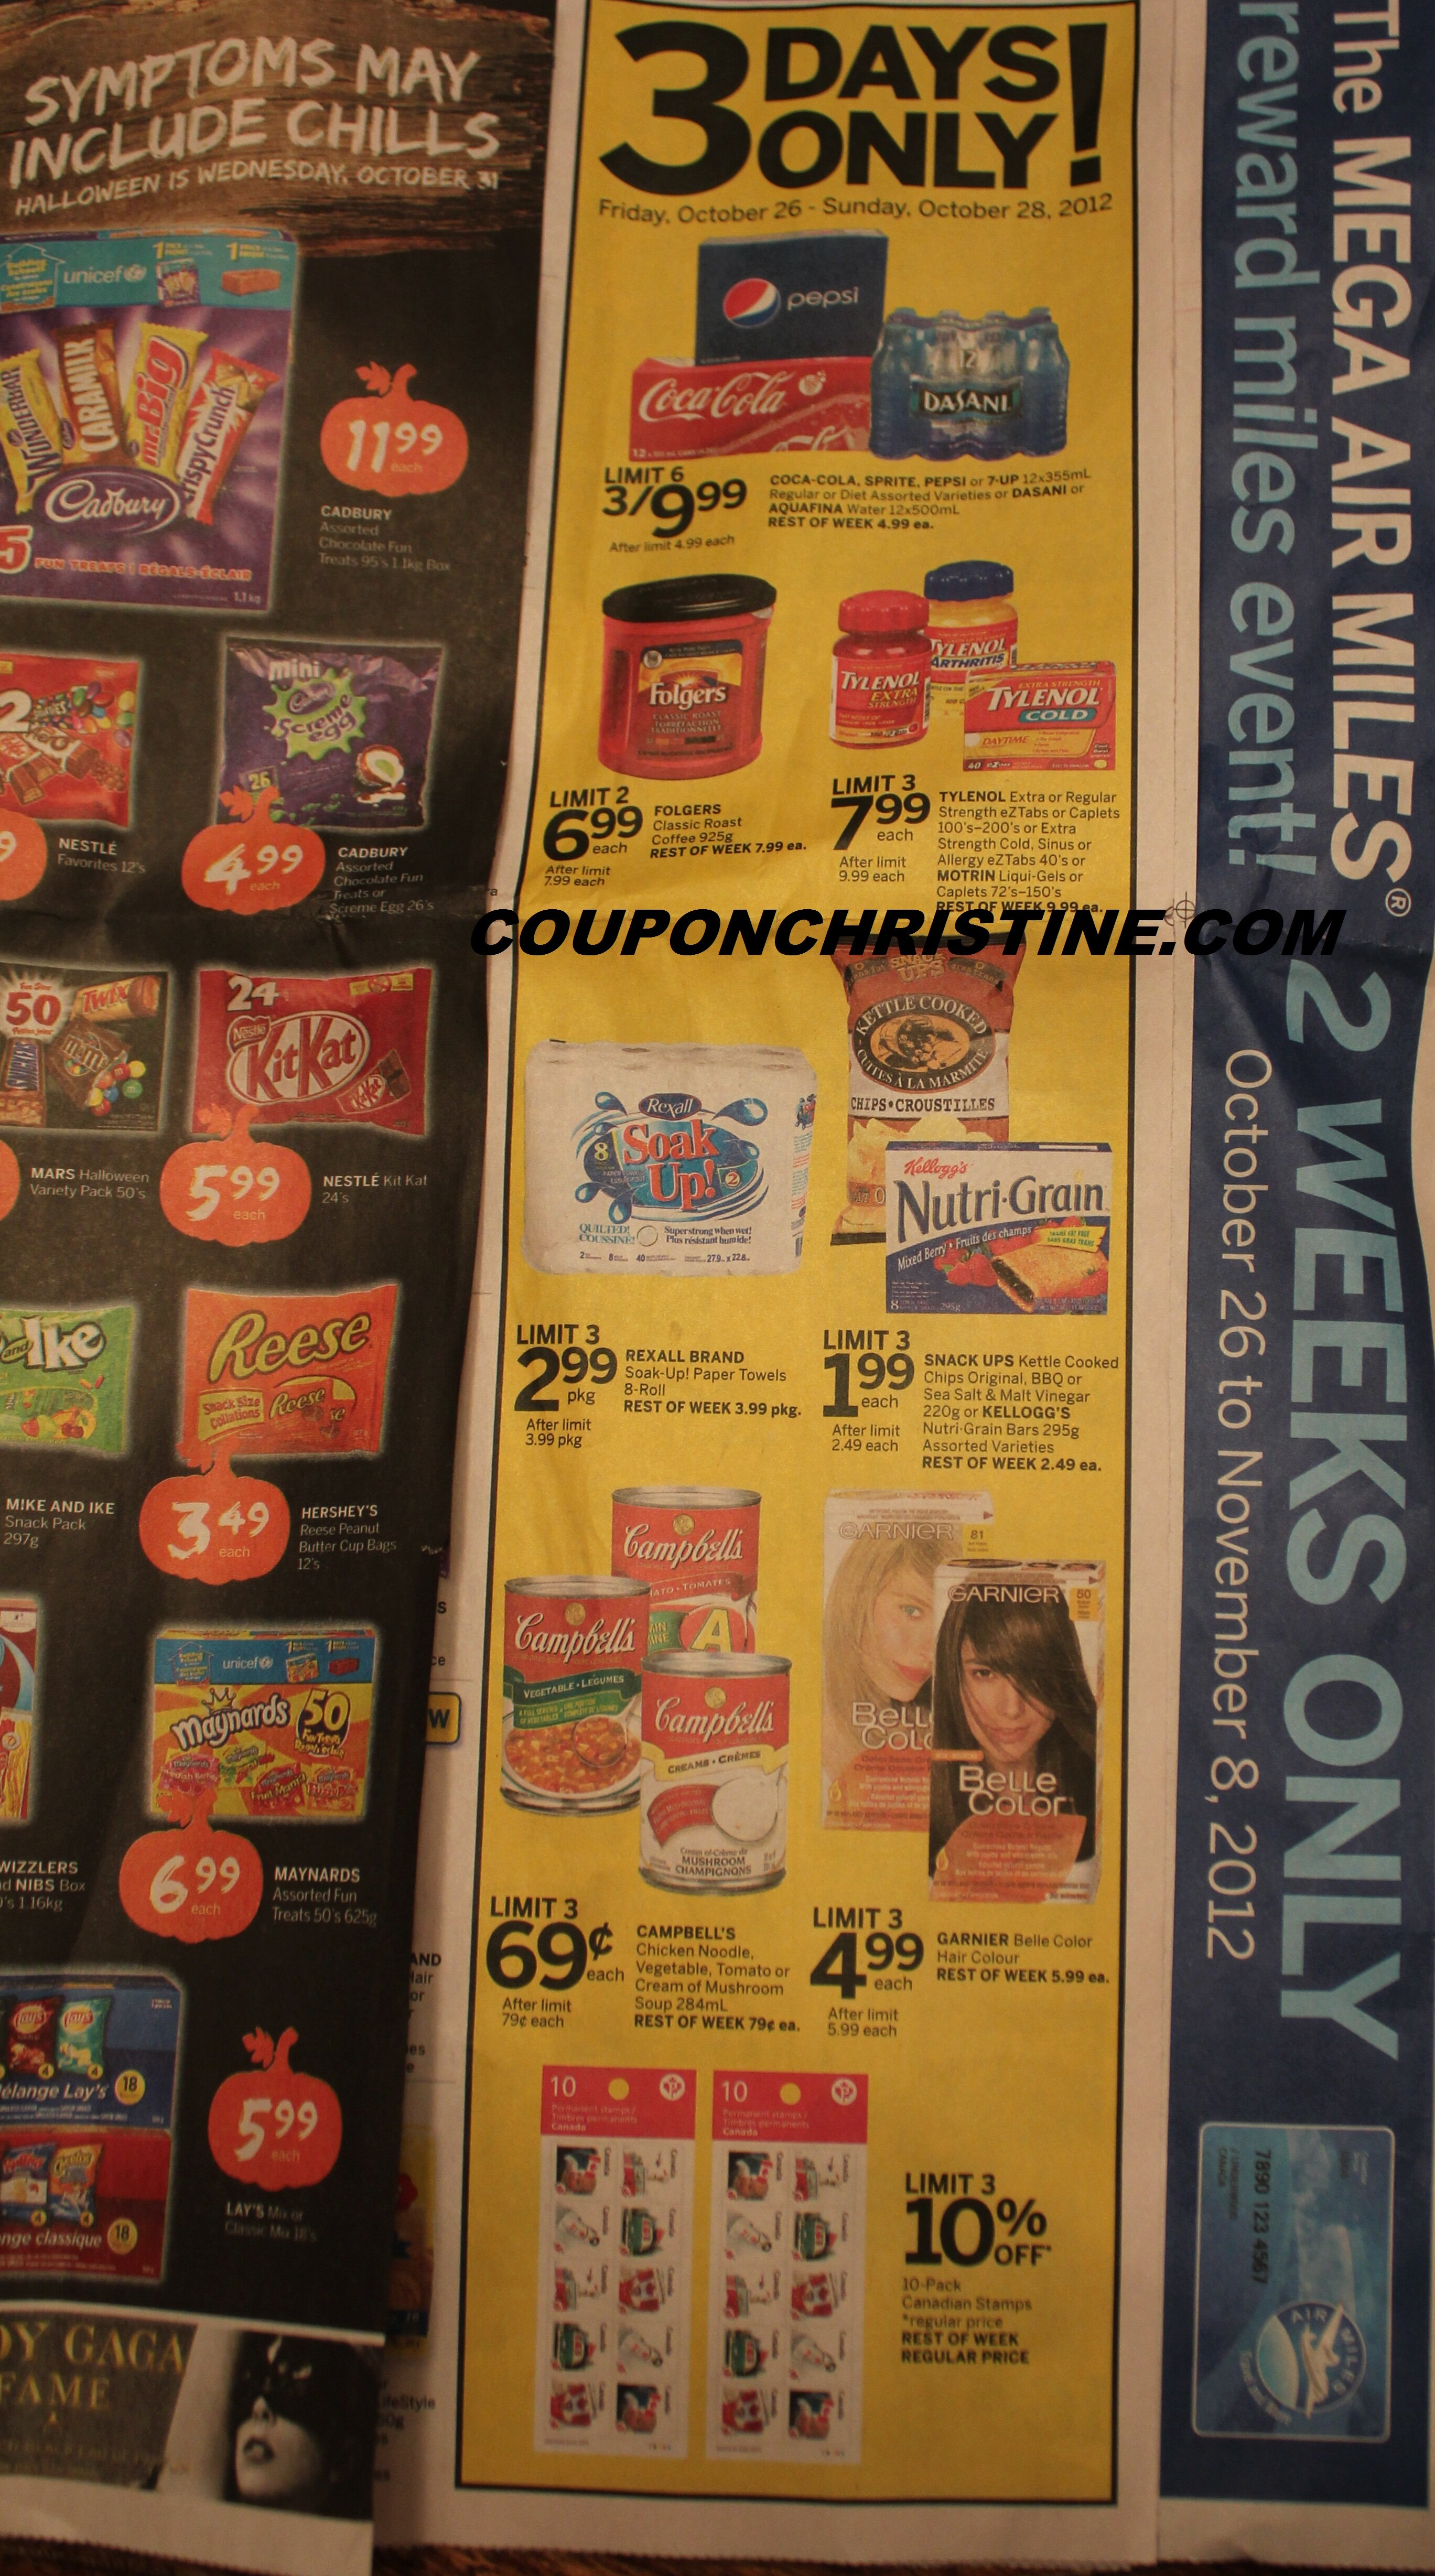 REXALL SNEAK PEEK and 10% off STAMPS (Oct. 26 – Nov. 1)